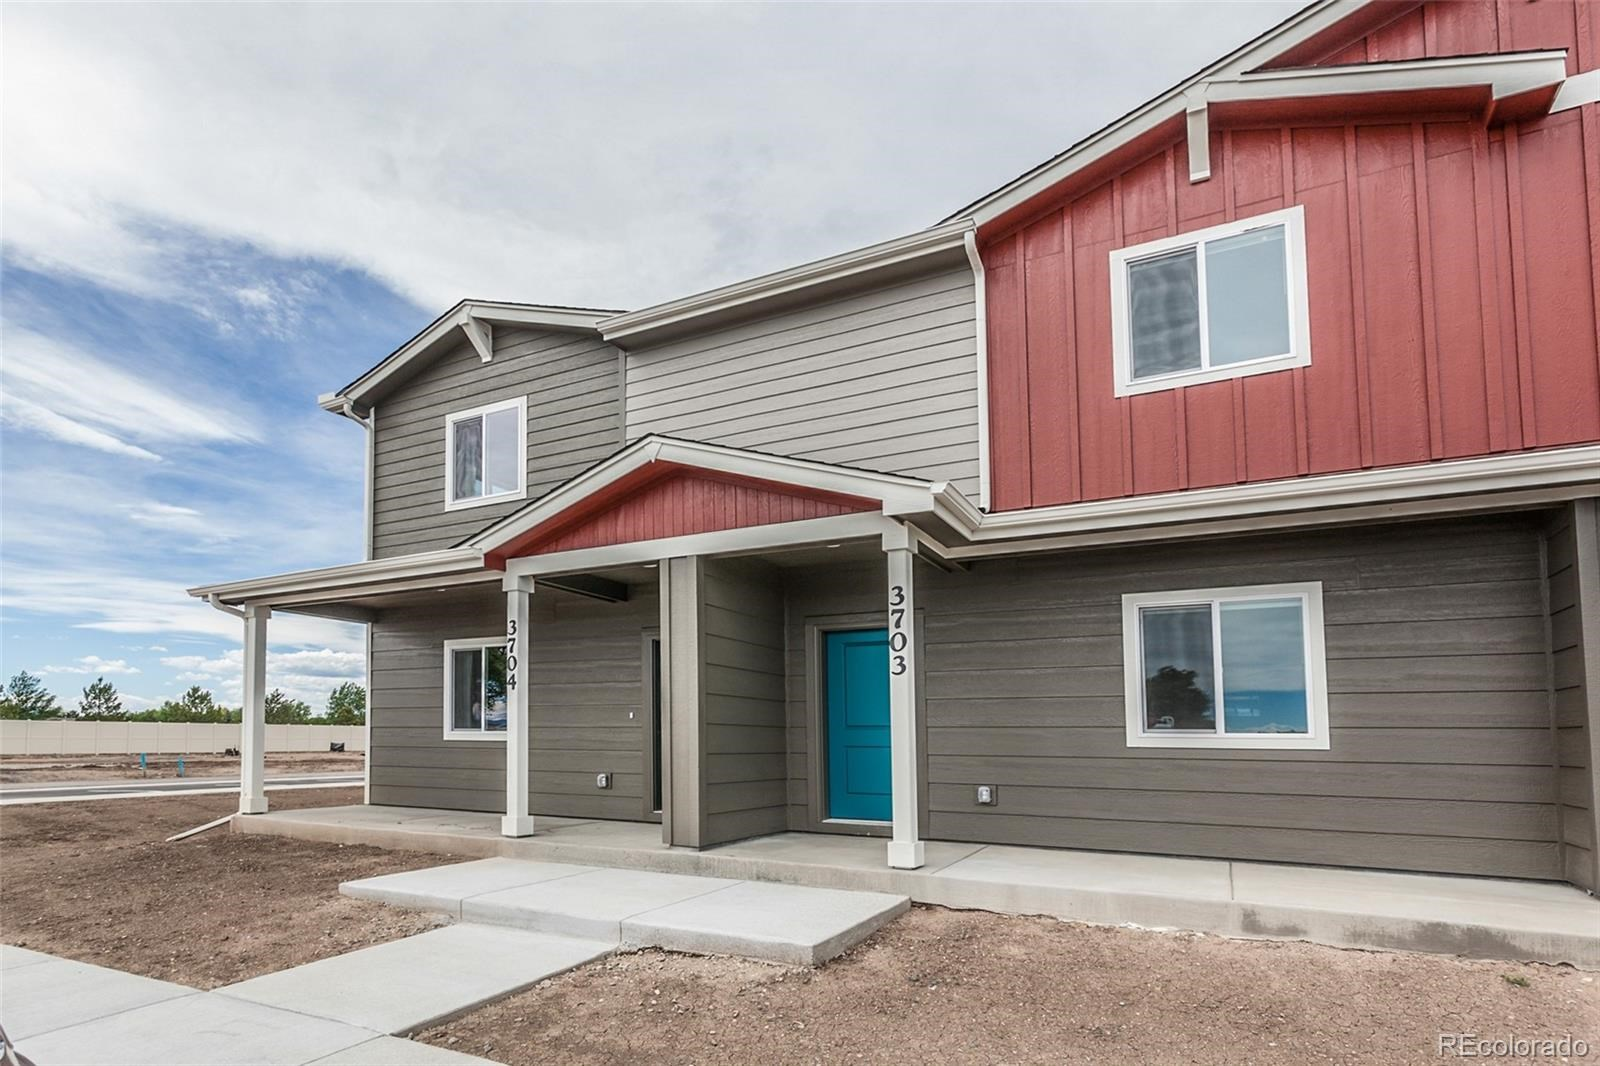 MLS# 8469518 - 3692 Ronald Reagan Avenue, Wellington, CO 80549